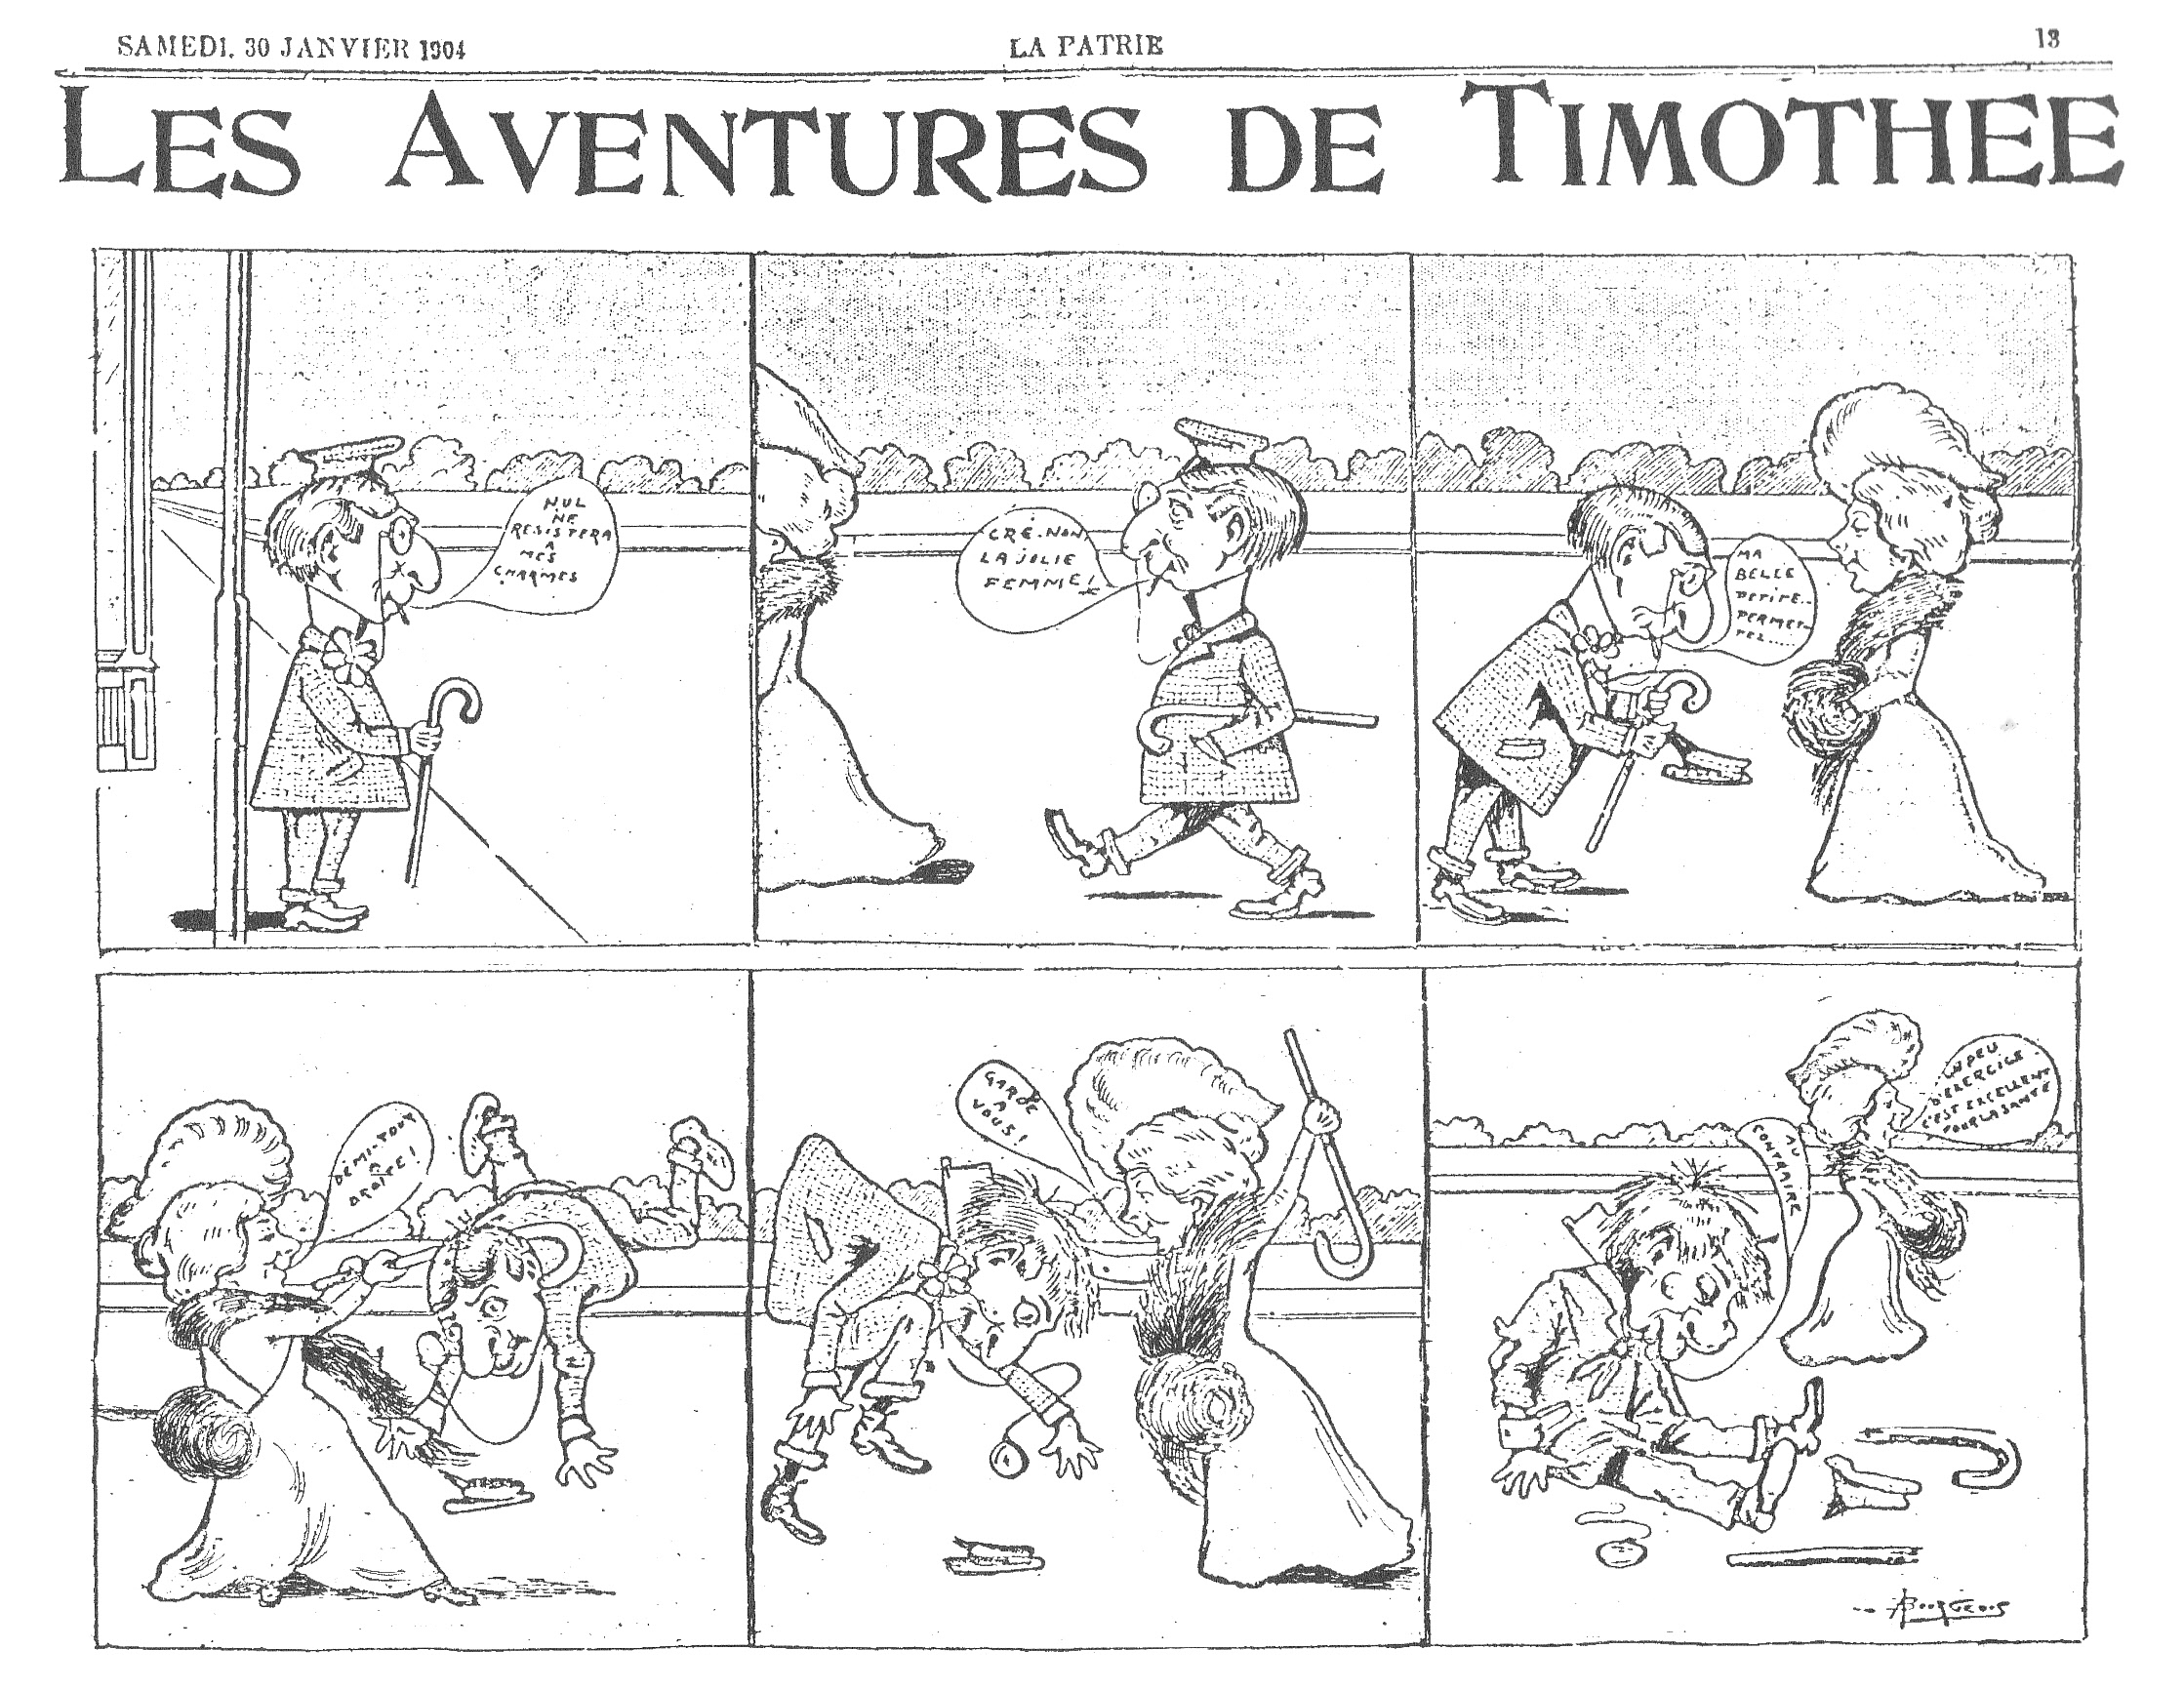 C:\Users\Robert\Documents\CARTOONING ILLUSTRATION ANIMATION\IMAGE CARTOON\IMAGE CARTOON A\AVENTURES DE TIMOTHEE, La Patrie, 30 Jan. 1904.jpg